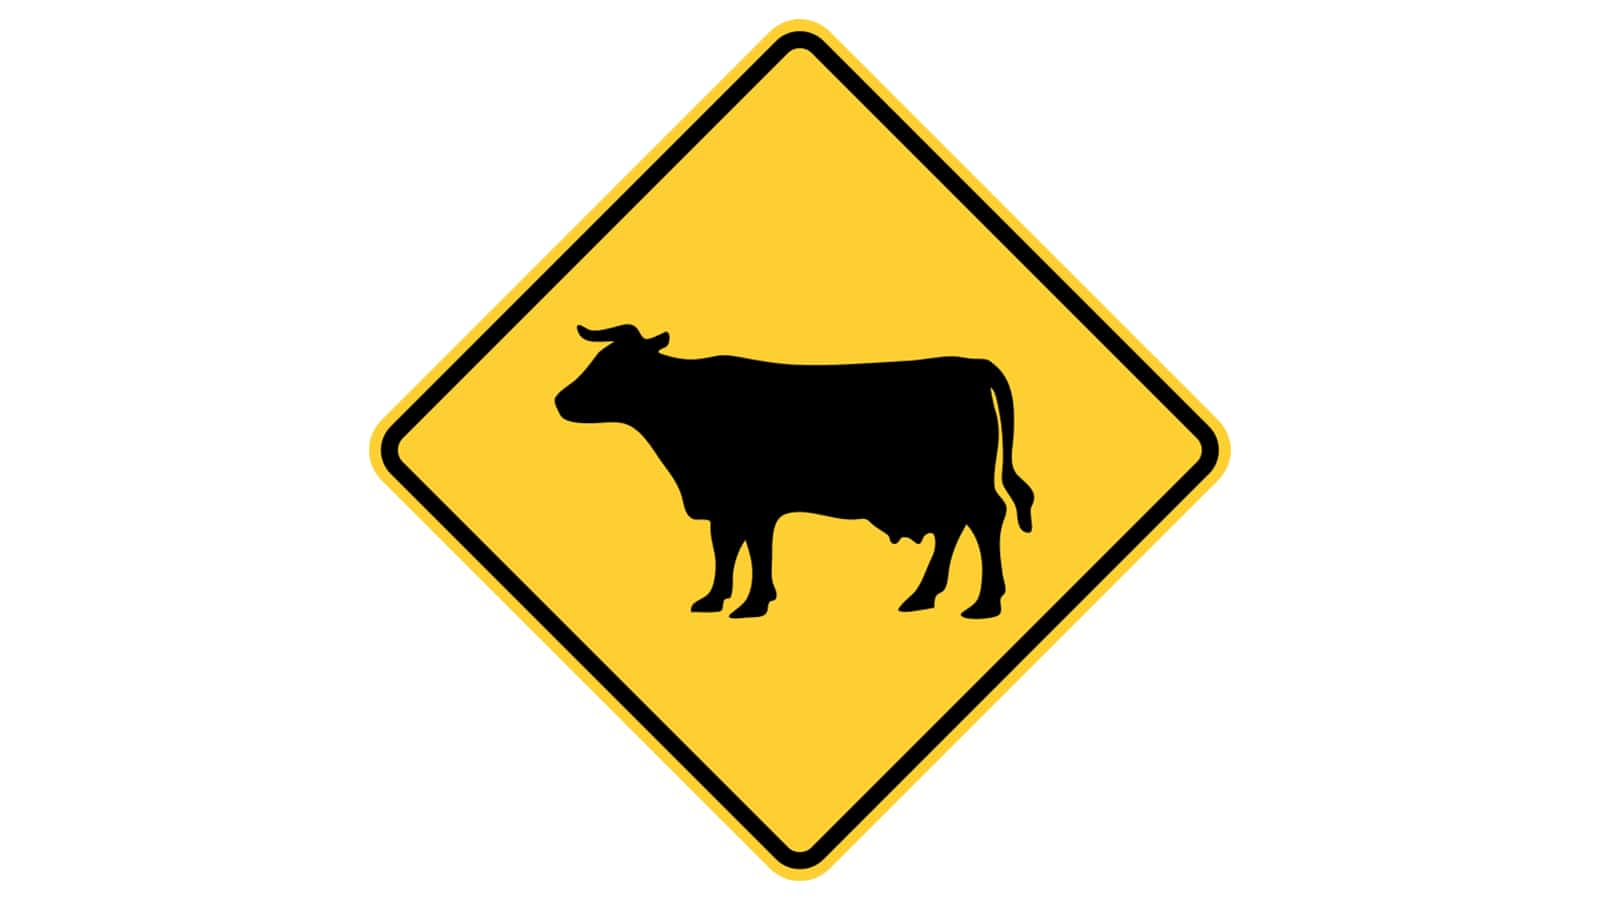 Warning sign Cattle Crossing